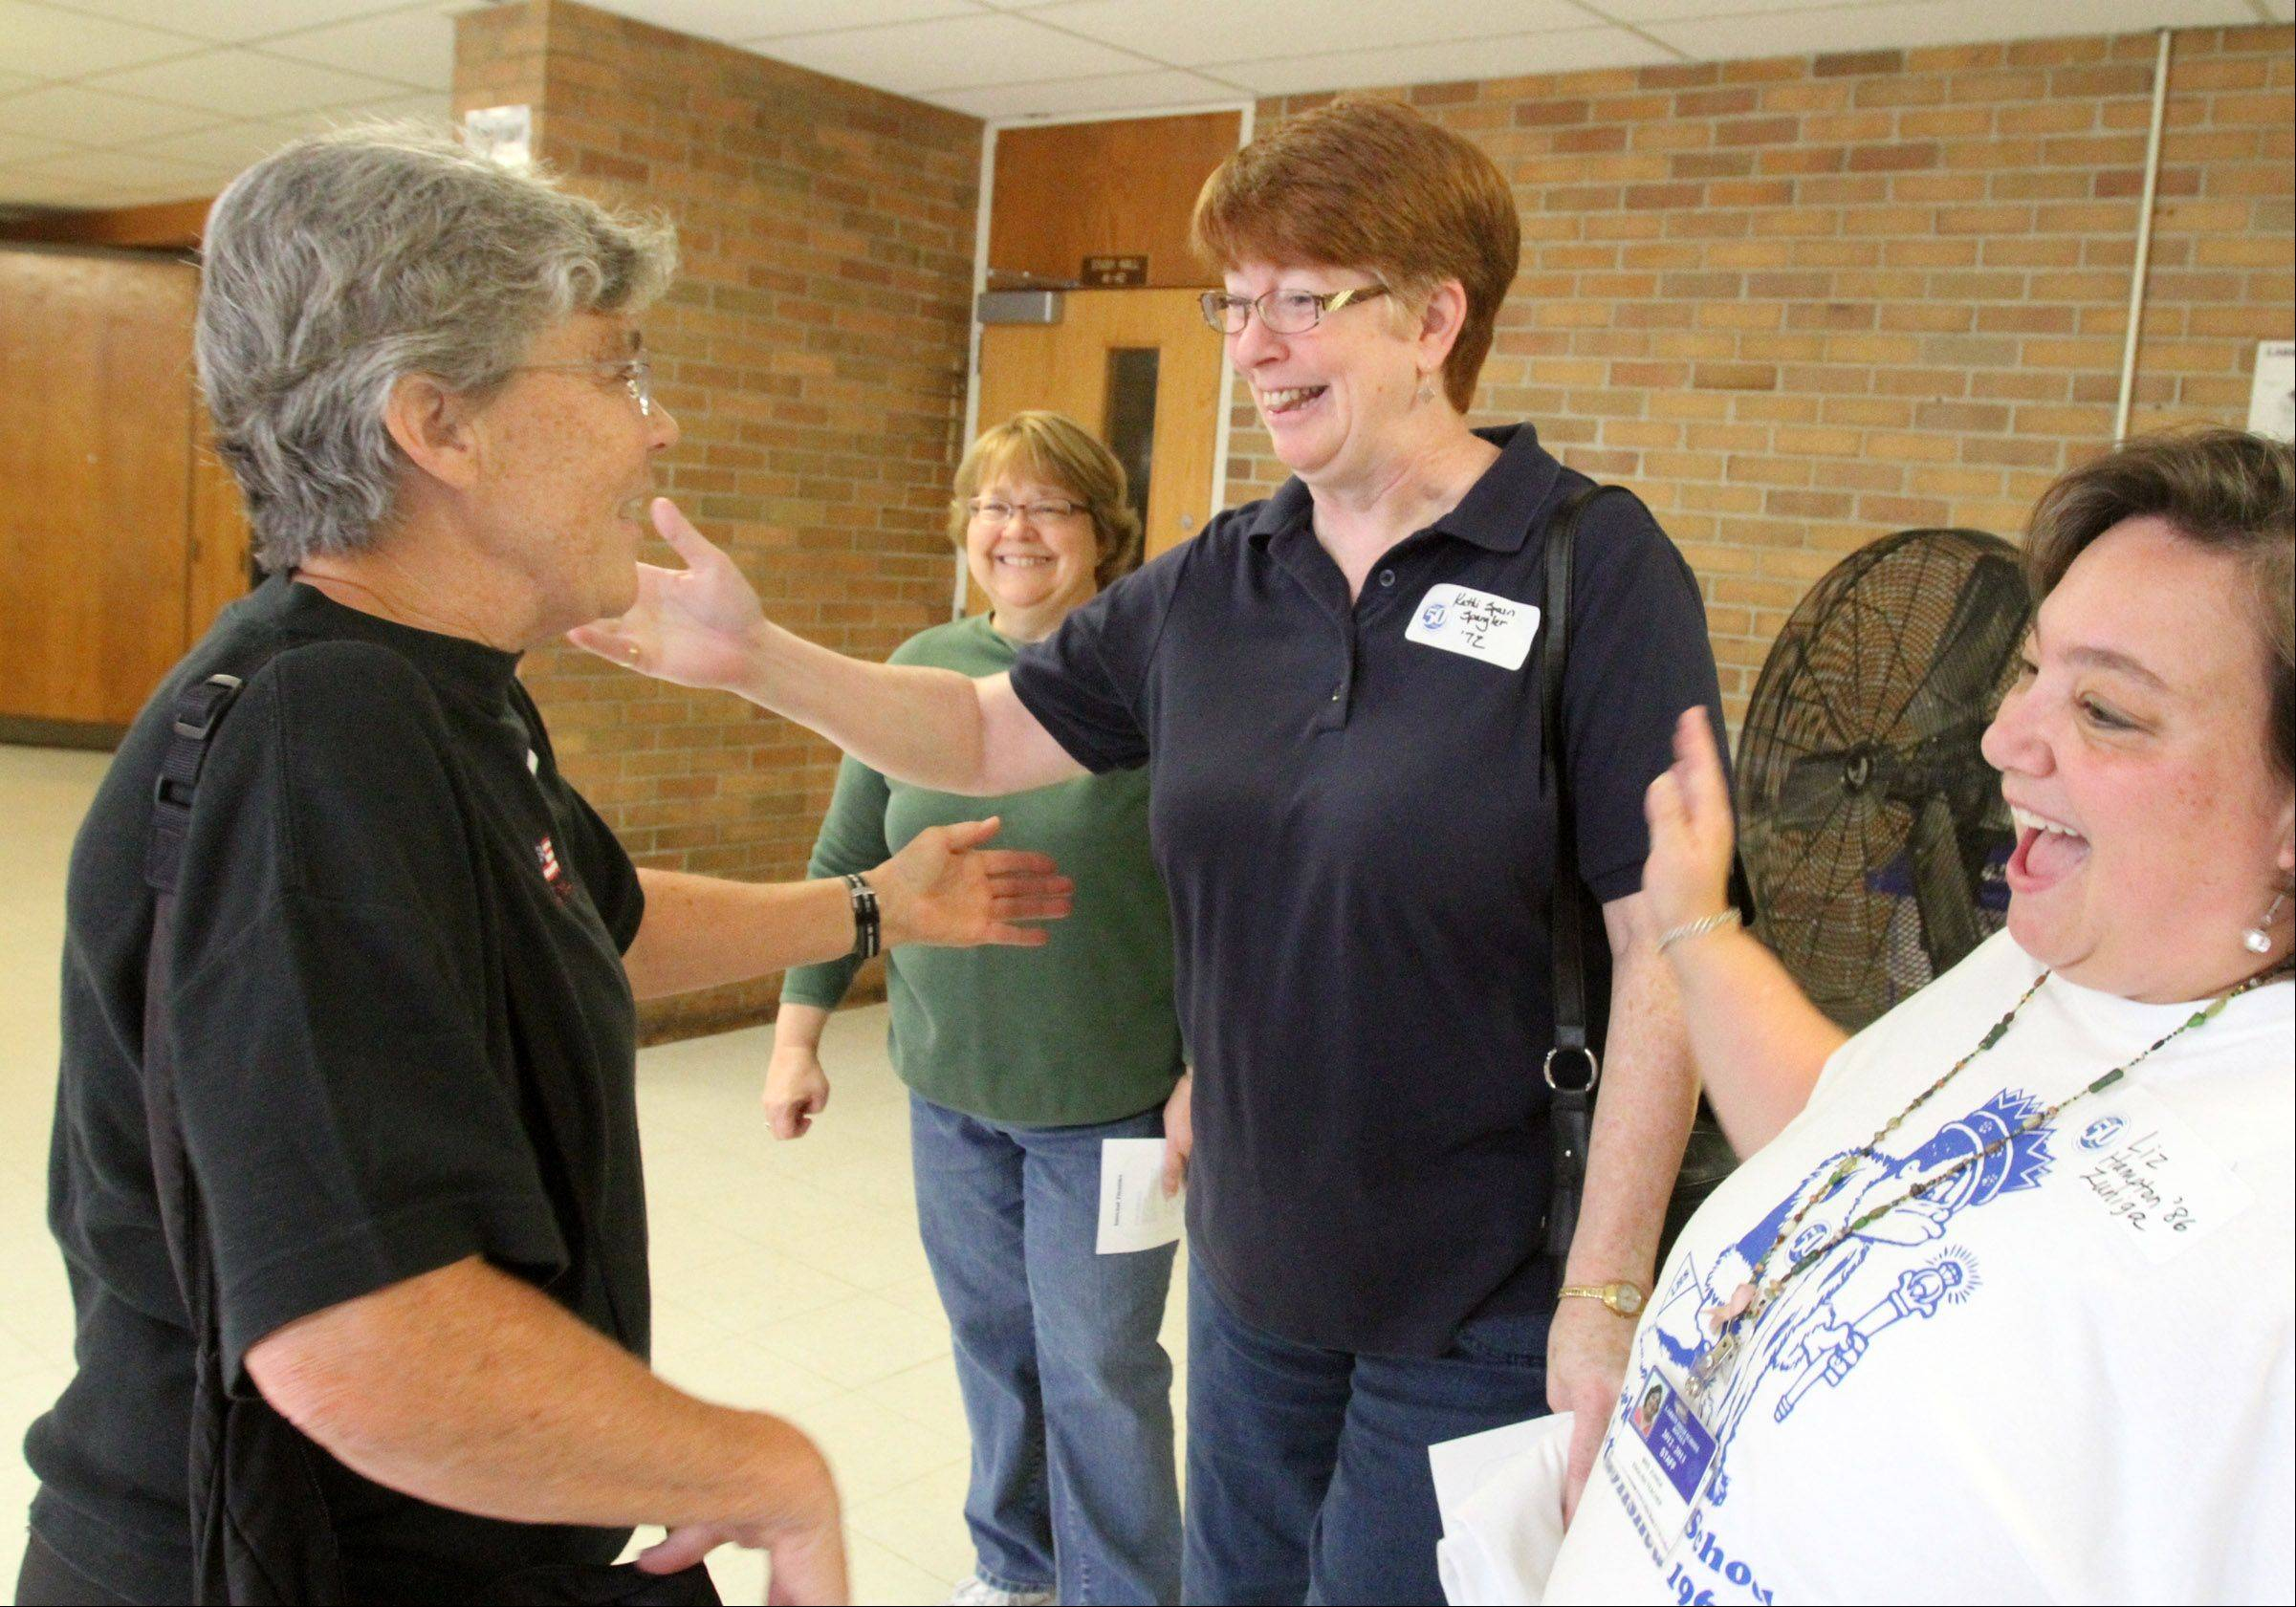 Mary O'Brien, a former 34-year teacher and 27-year varsity girls volleyball coach at Larkin High School, left, is greeted by 1972 graduate Kati Spangler, center, and 1986 graduate and 22-year Larkin English teacher, Liz Zuniga, right, during Larkin High School's 50th birthday open house in Elgin on Saturday.